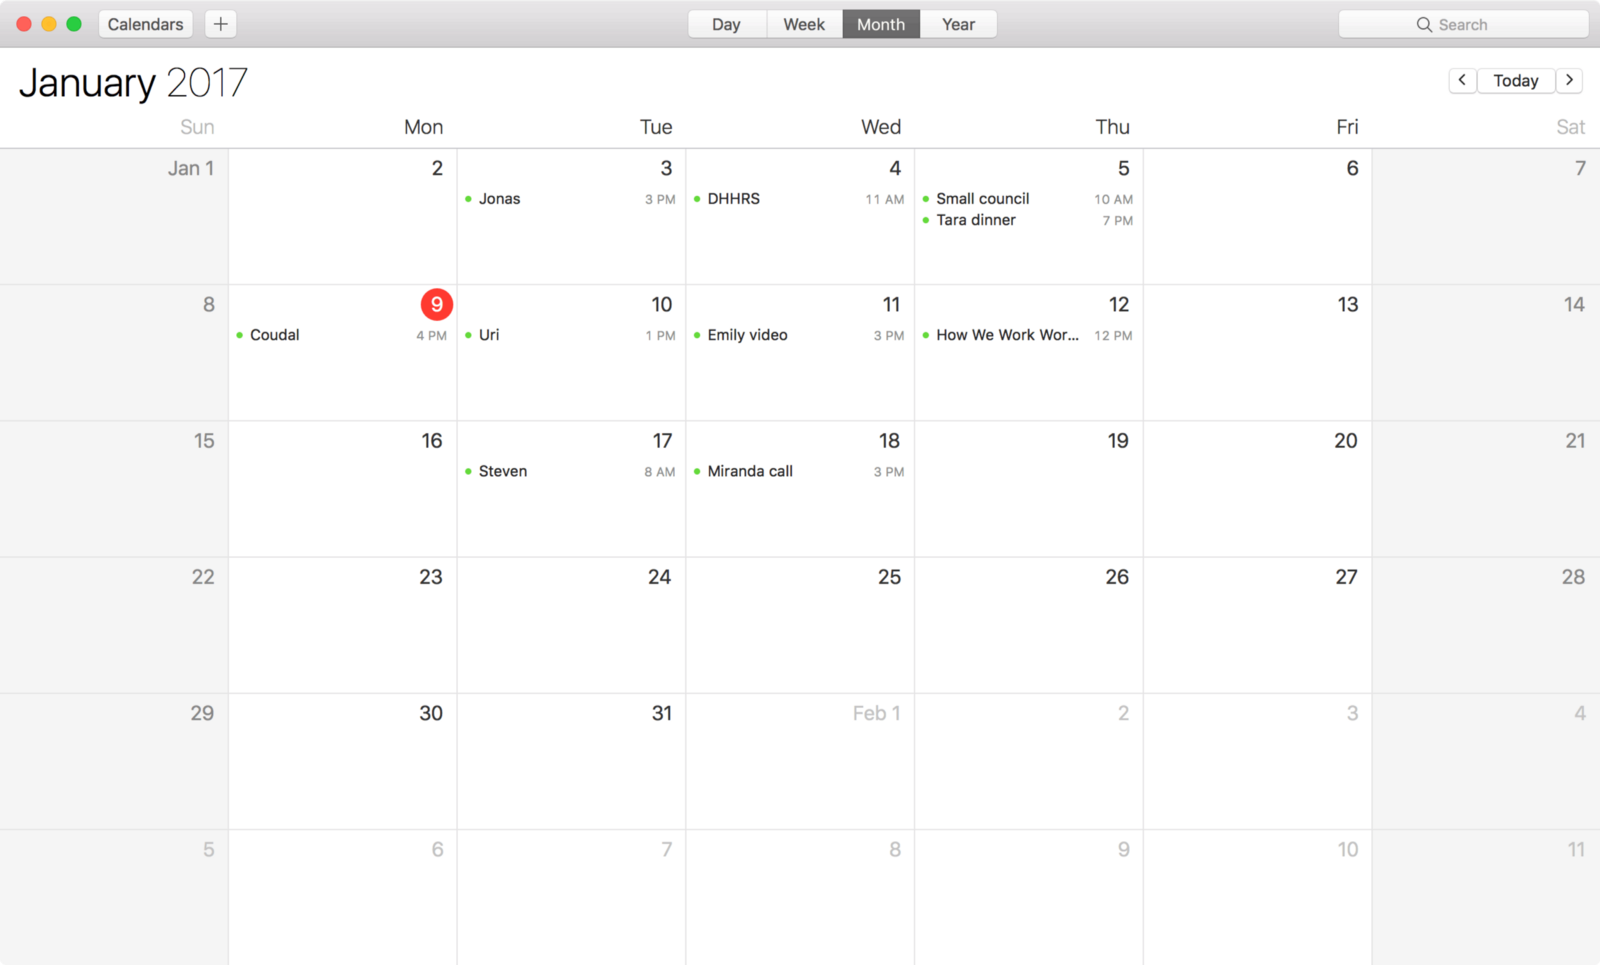 what my calendar looks like signal v noise